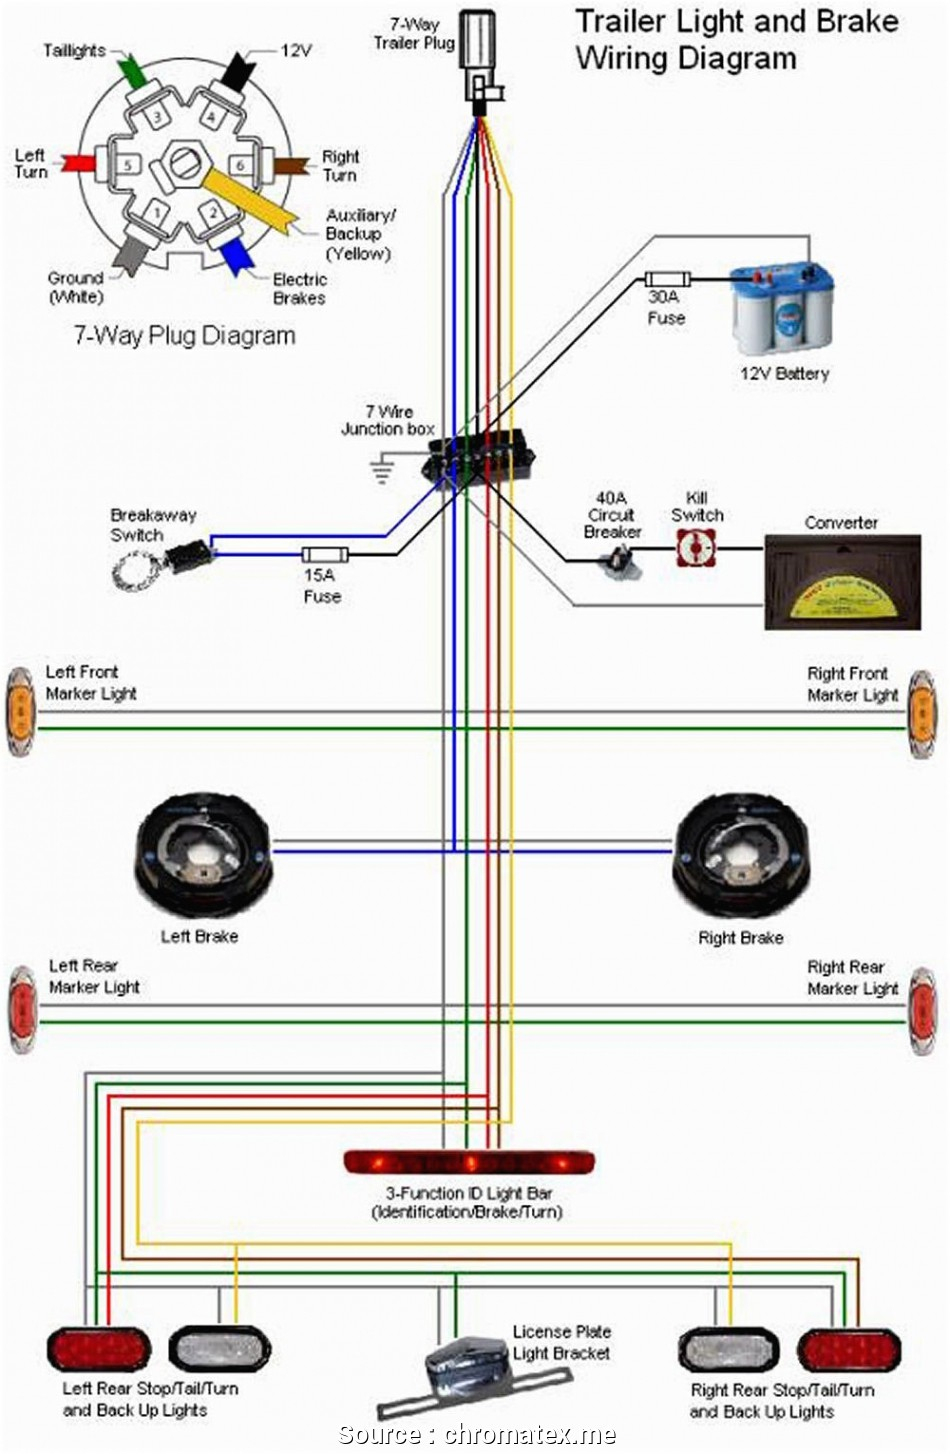 14 Creative Breakaway Trailer Brake Wiring Diagram Galleries - Type - Trailer Brake Breakaway Wiring Diagram